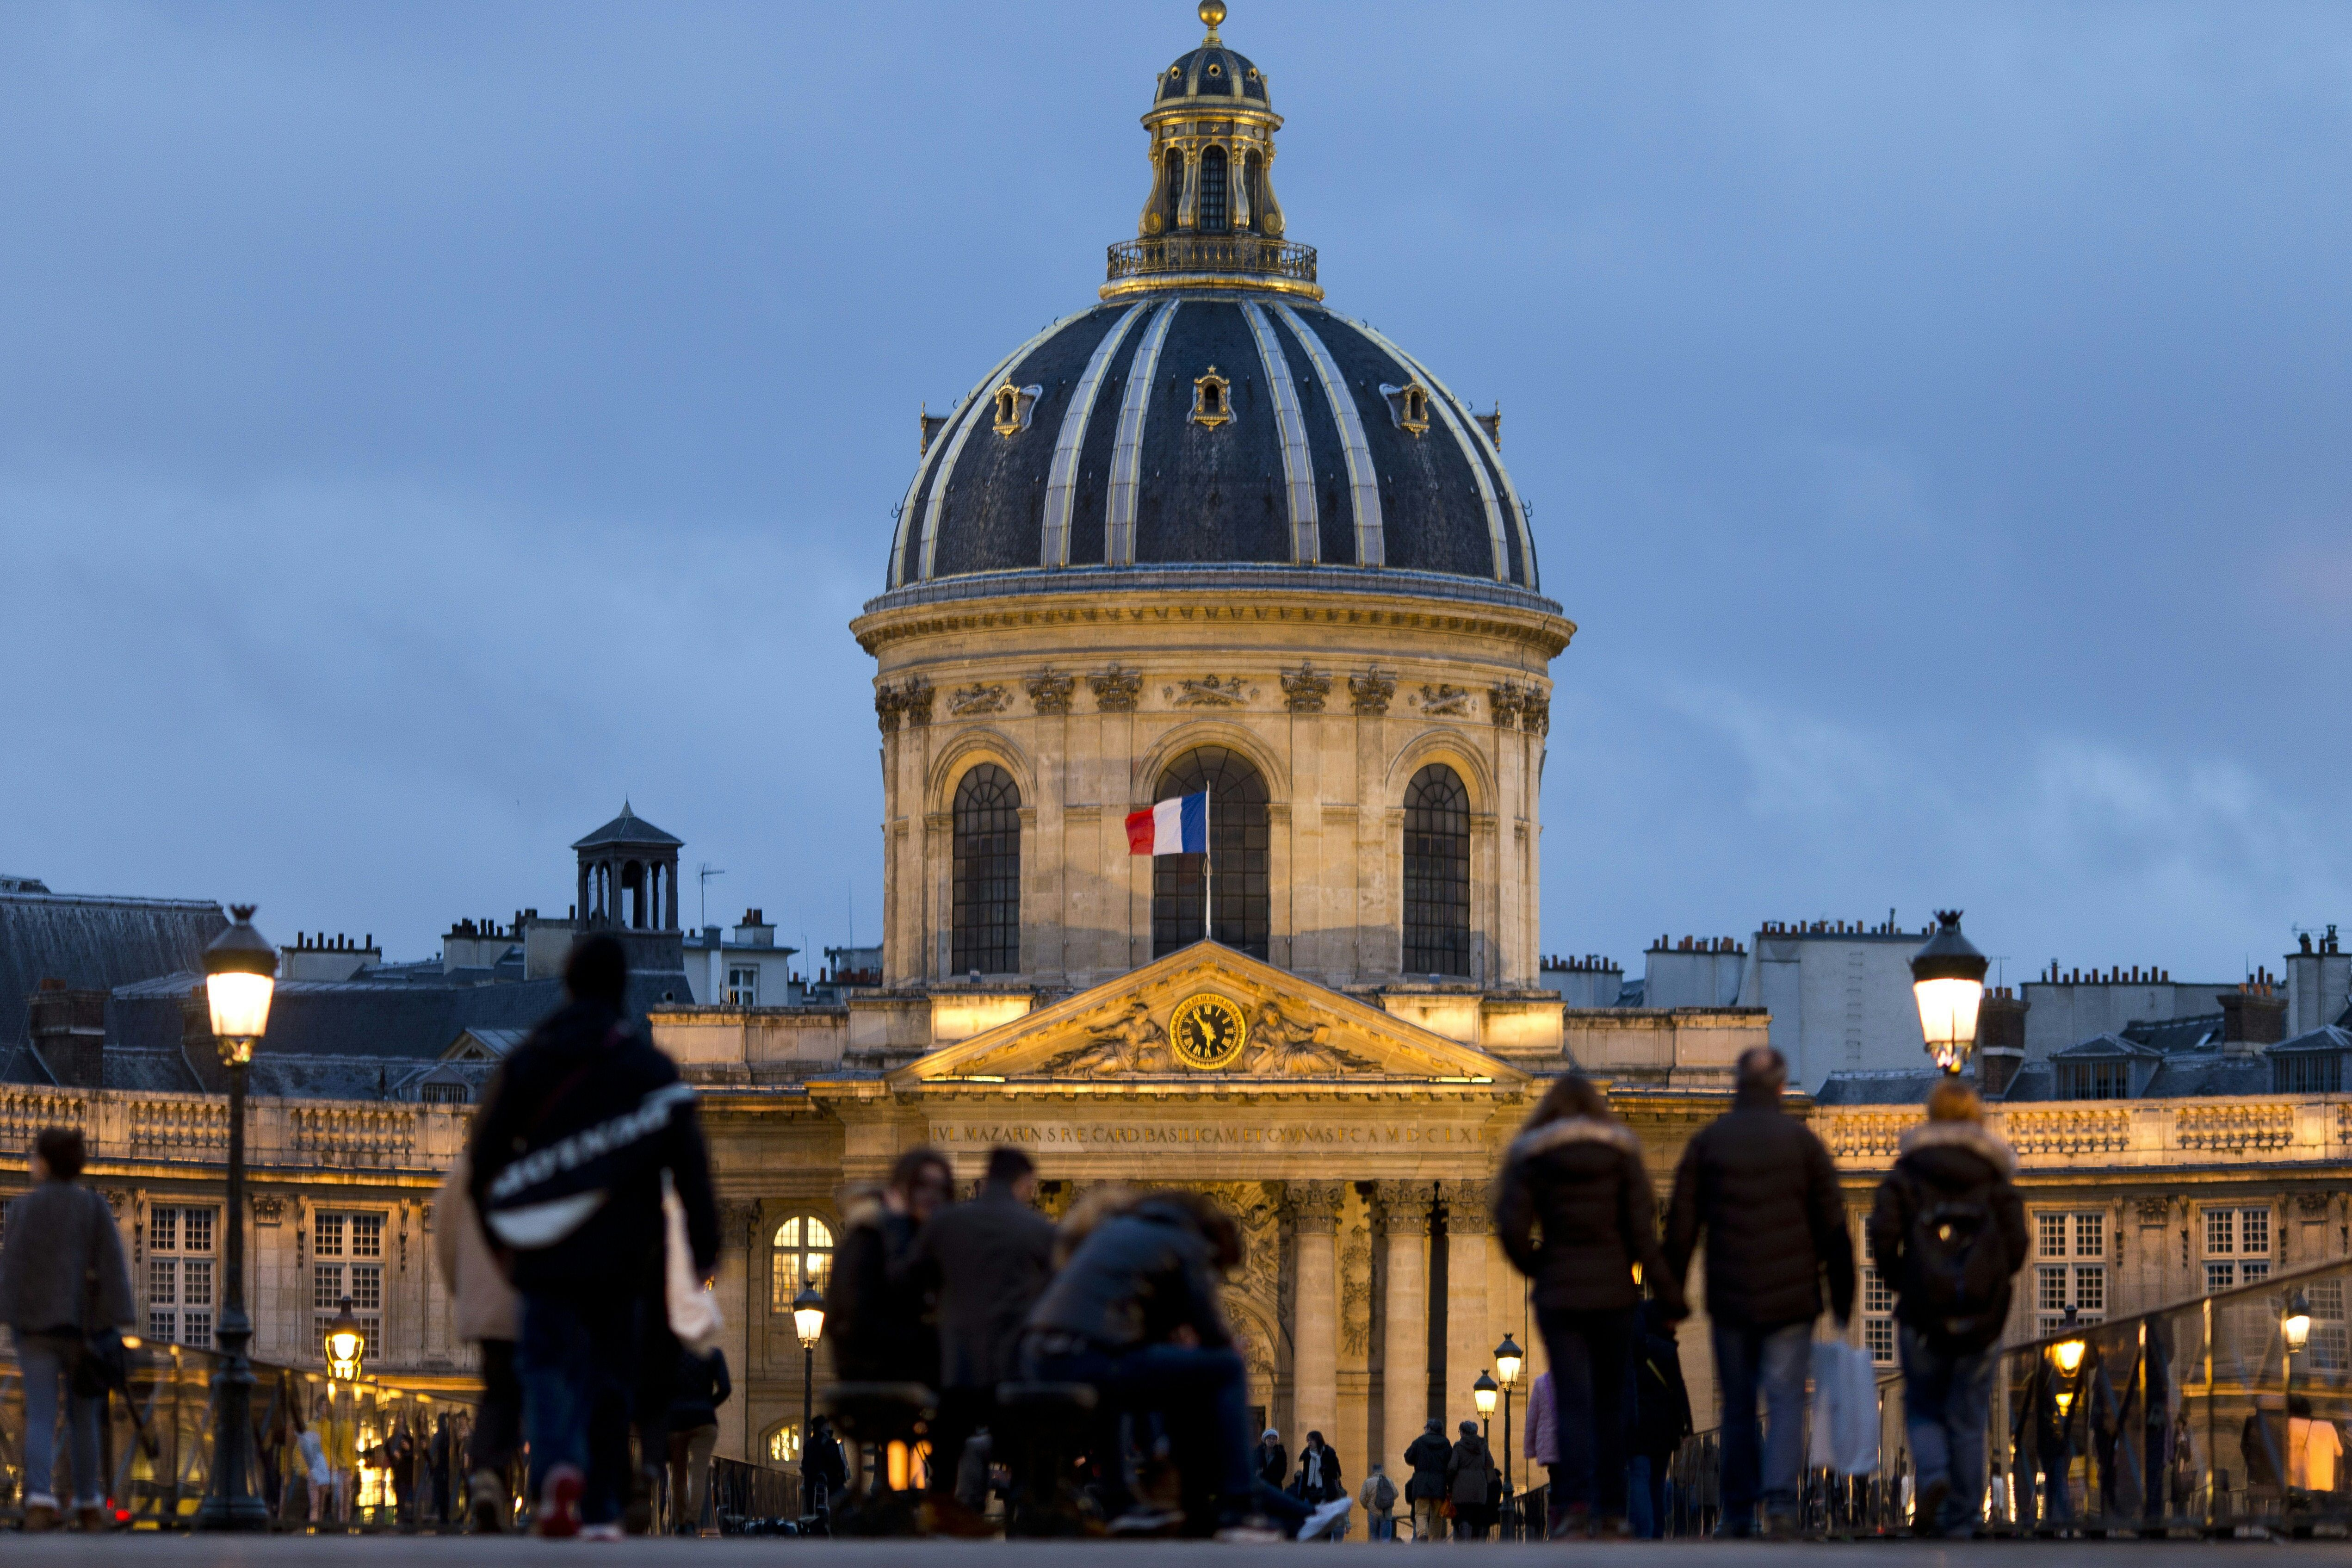 People walk on a bridge in front of the Institut de France building which houses the Academie Francaise in Paris on Feb. 1.